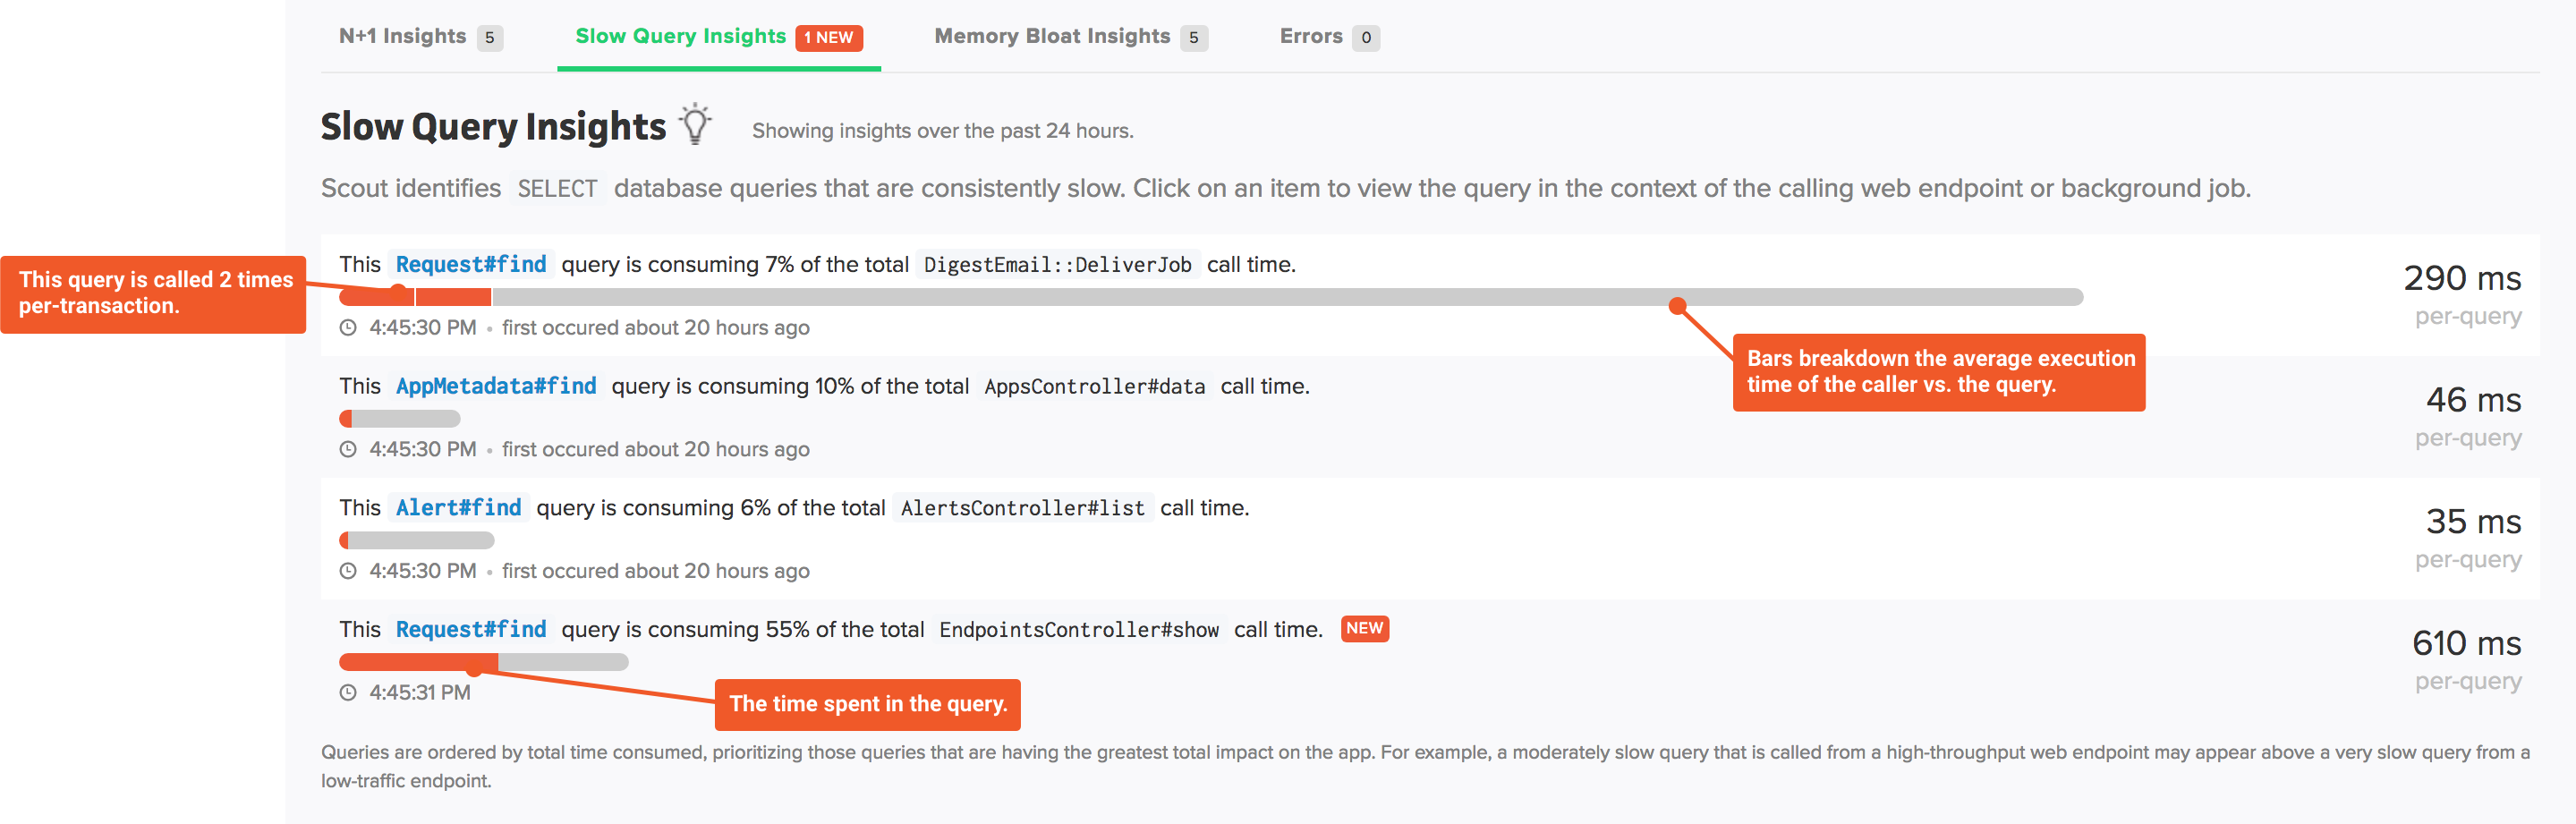 slow query insights